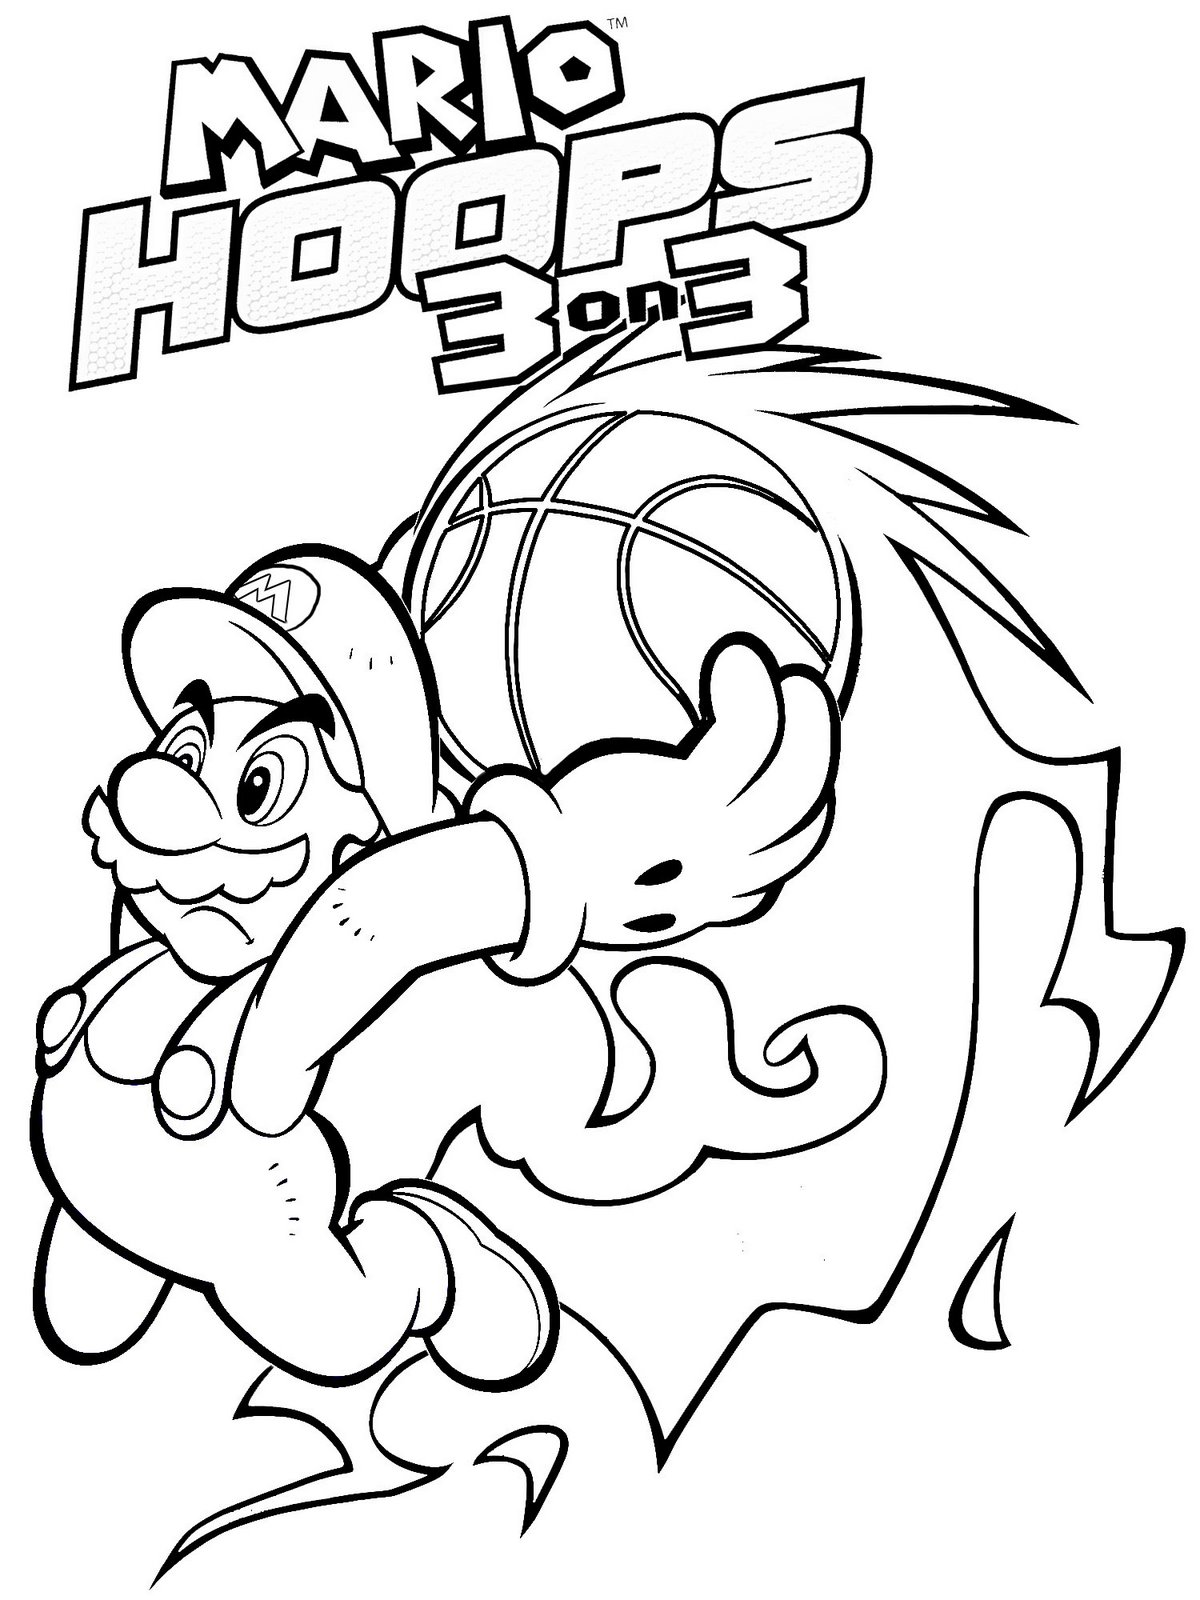 mario brothers coloring pages free - photo#20